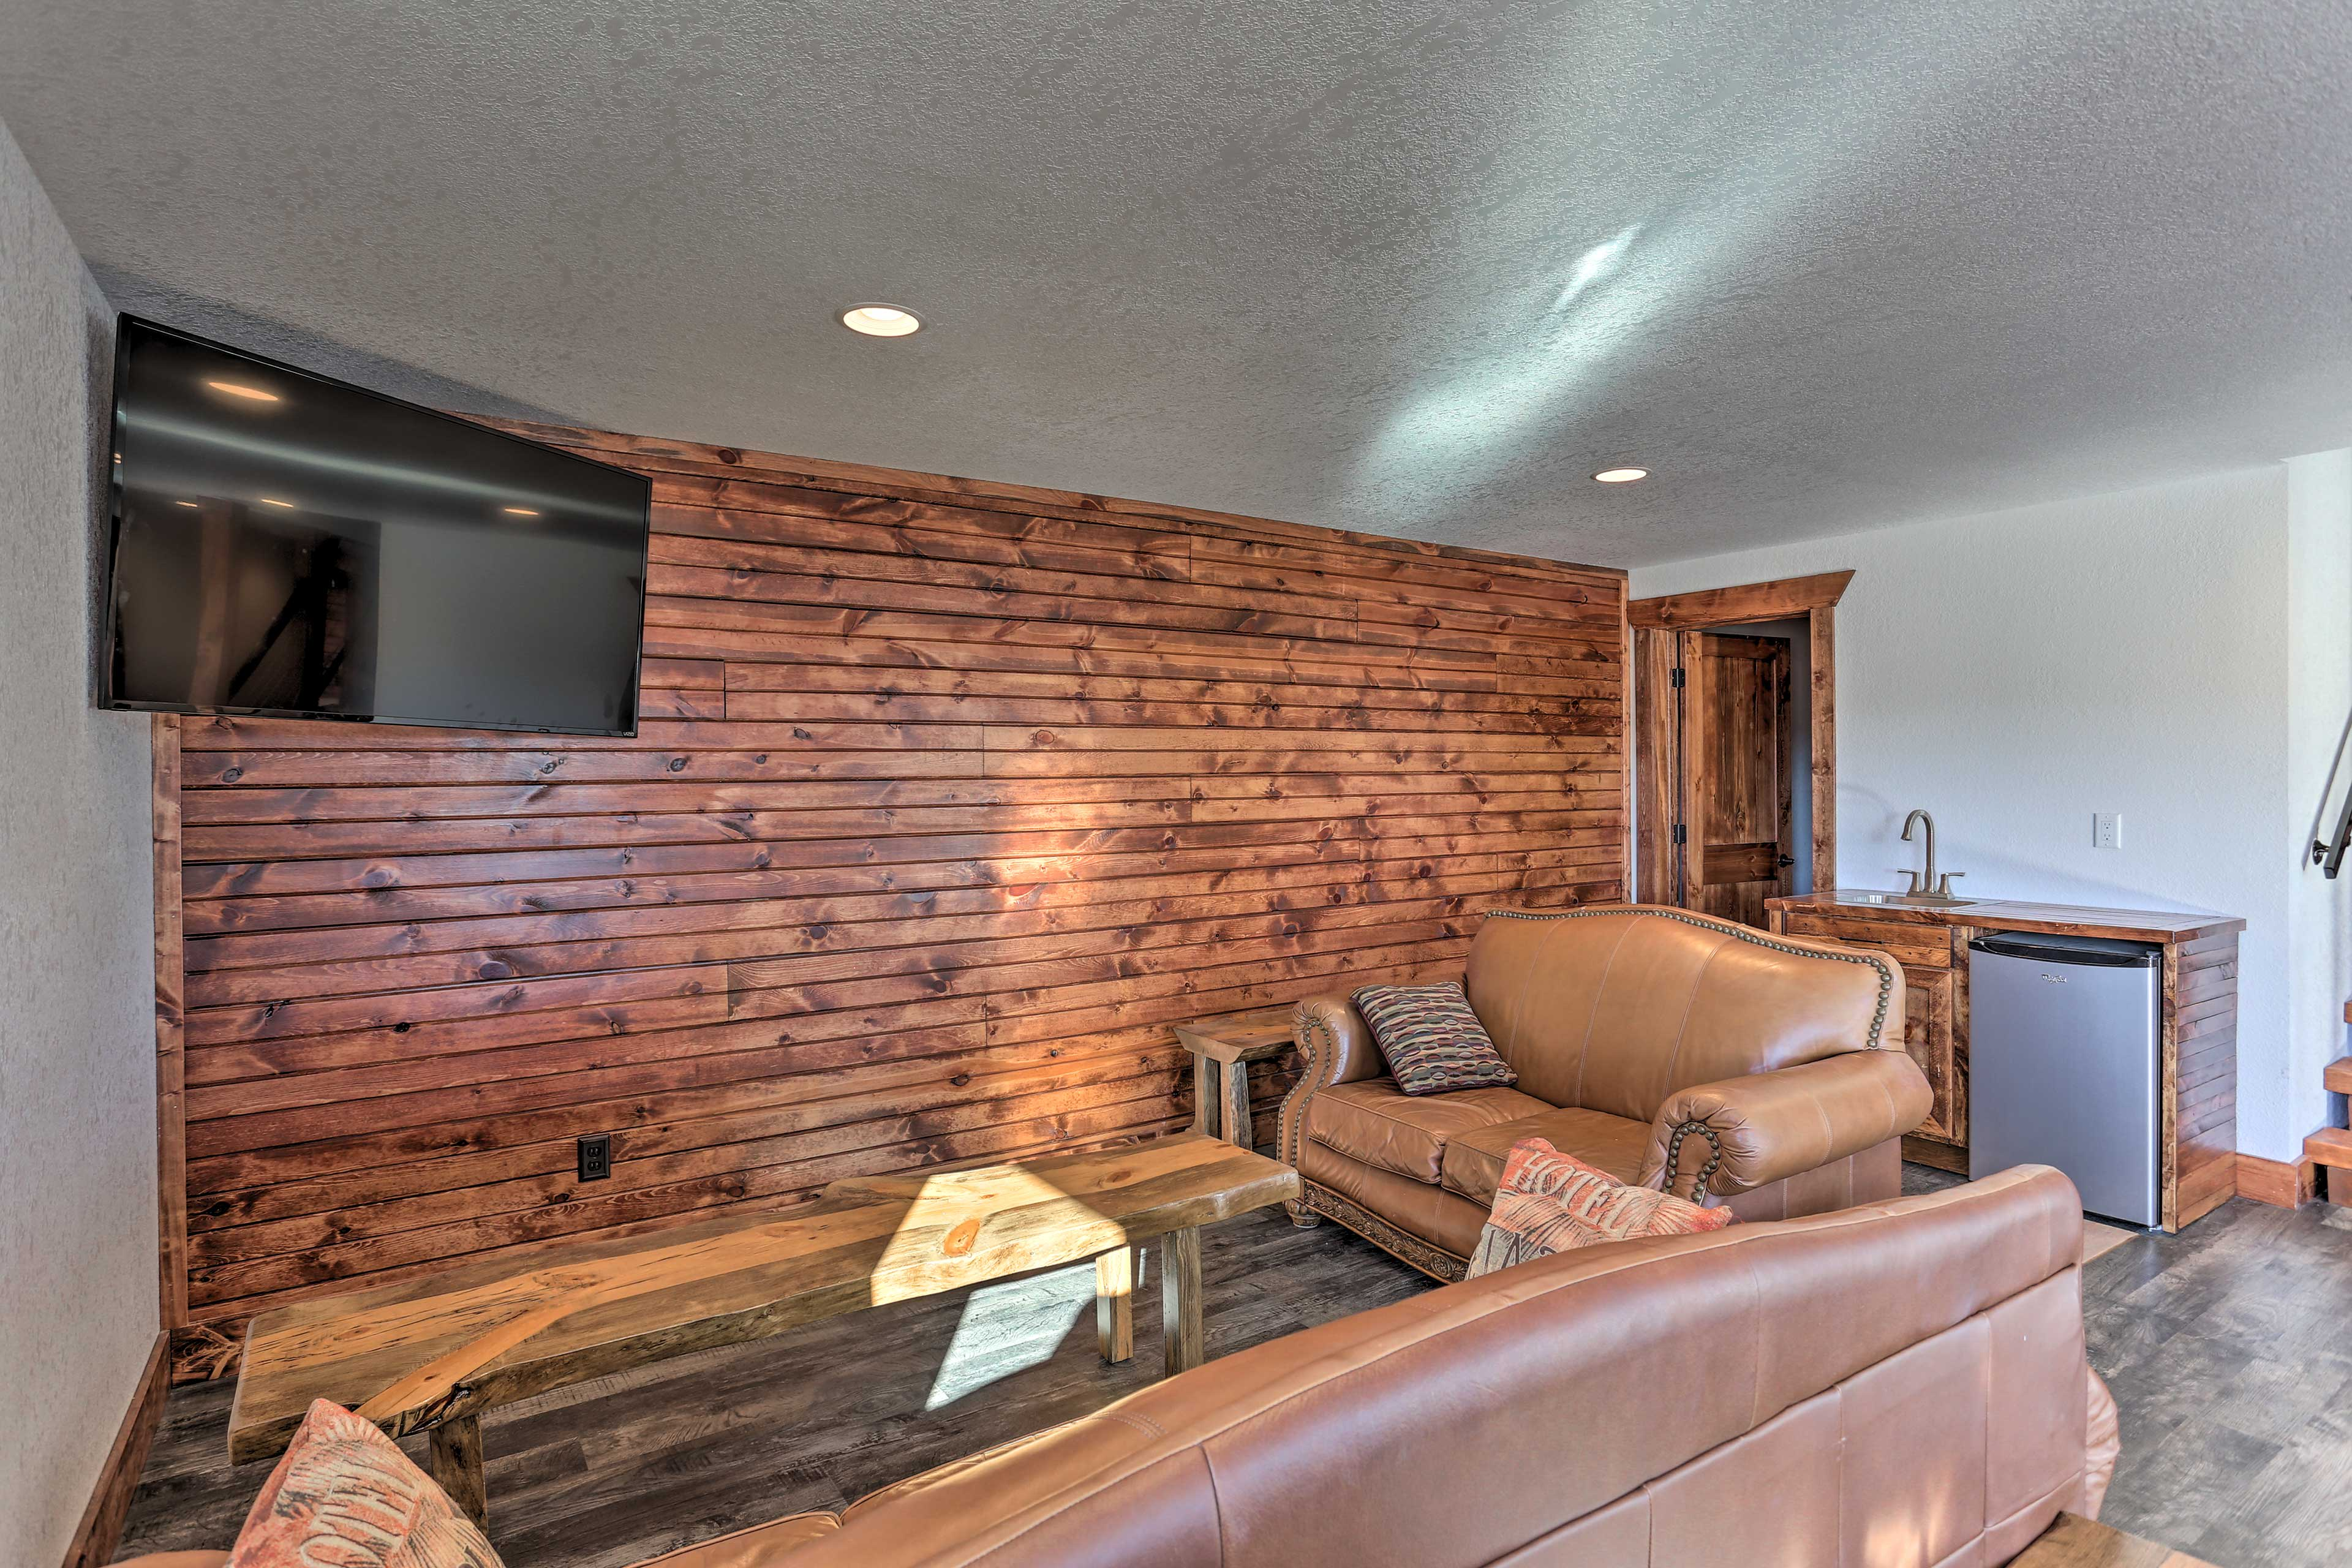 Kick back on the leather seating in front of the flat-screen TV.